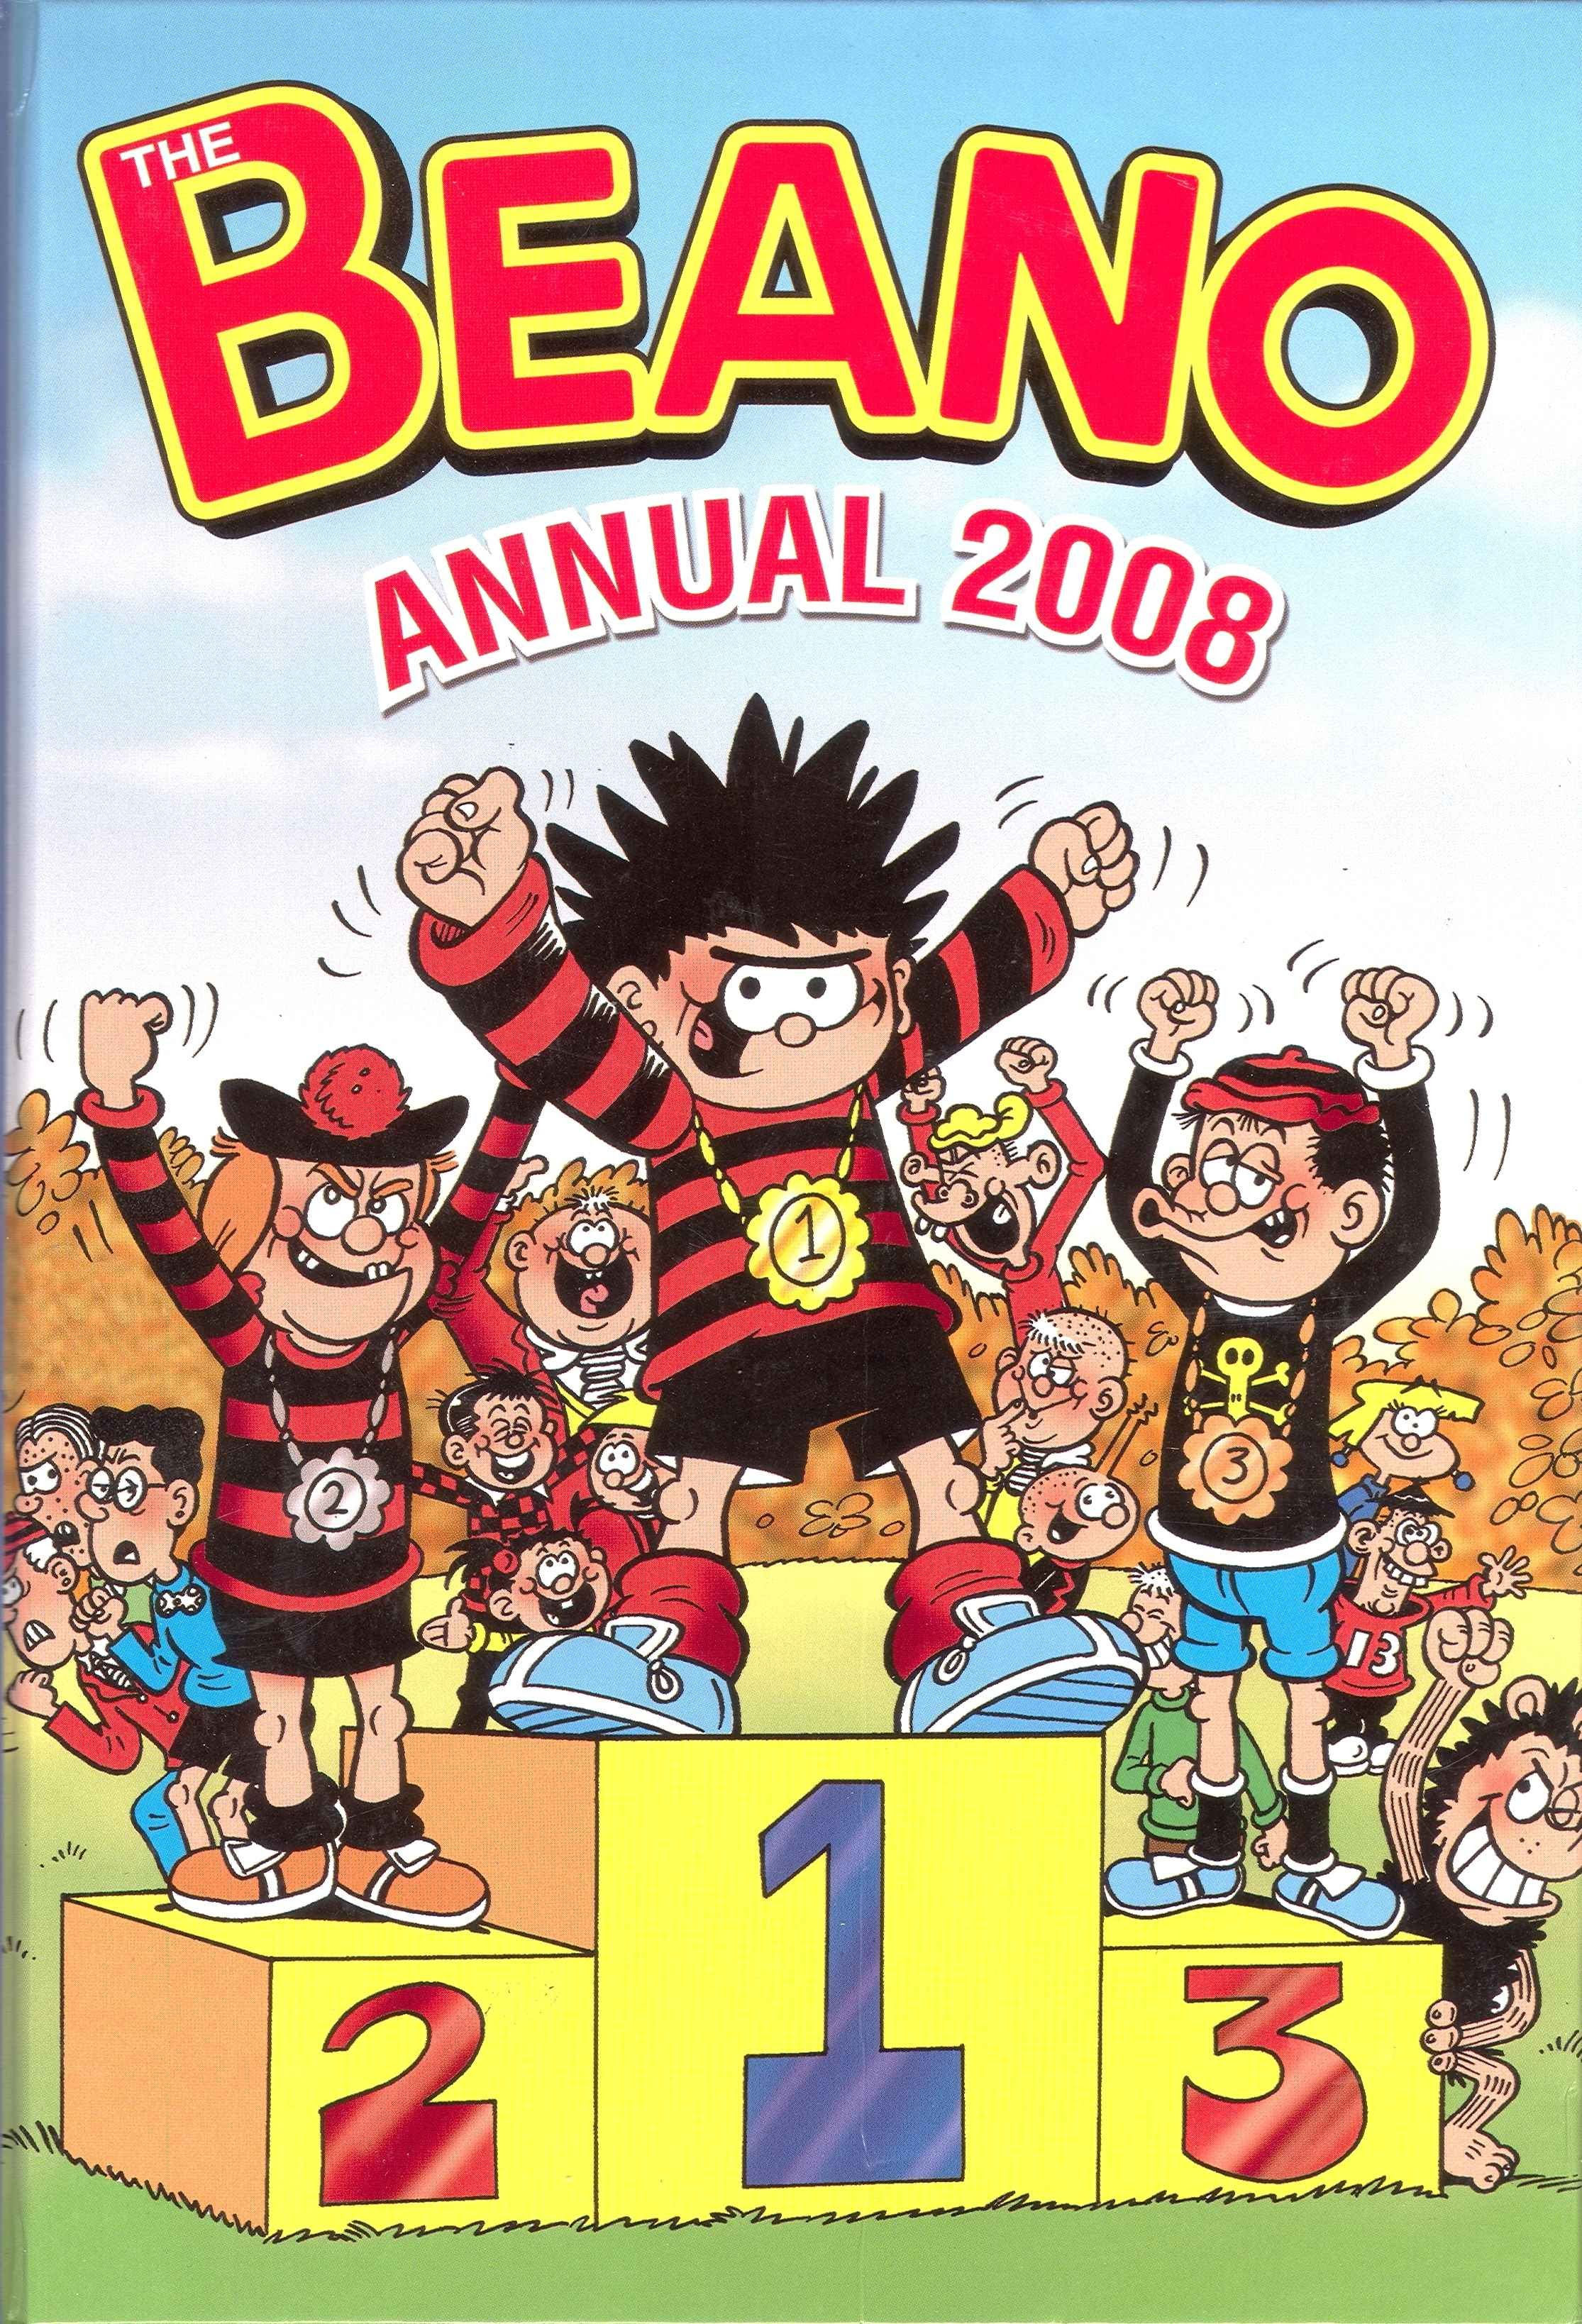 The Beano Book (Annual) 2008 Page 1